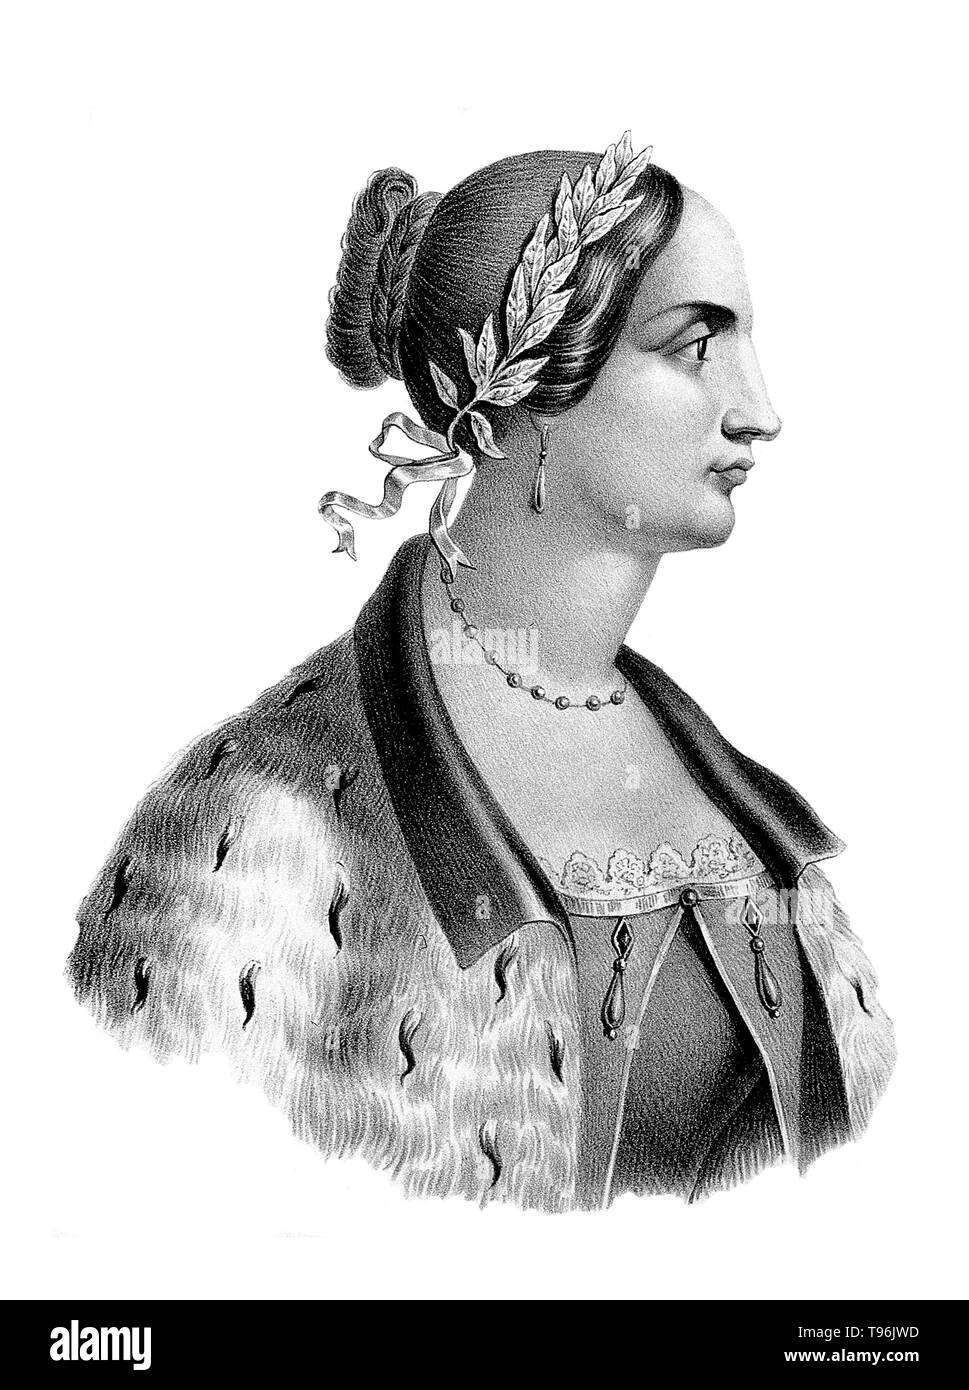 Laura Maria Caterina Bassi (October 1711 - February 20,  1778) was an Italian physicist and academic. She received a doctoral degree in Philosophy from the University of Bologna in May 1732. She was the first woman to earn a professorship in physics at a university. She is recognized as the first woman in the world to be appointed a university chair in a scientific field of studies. - Stock Image